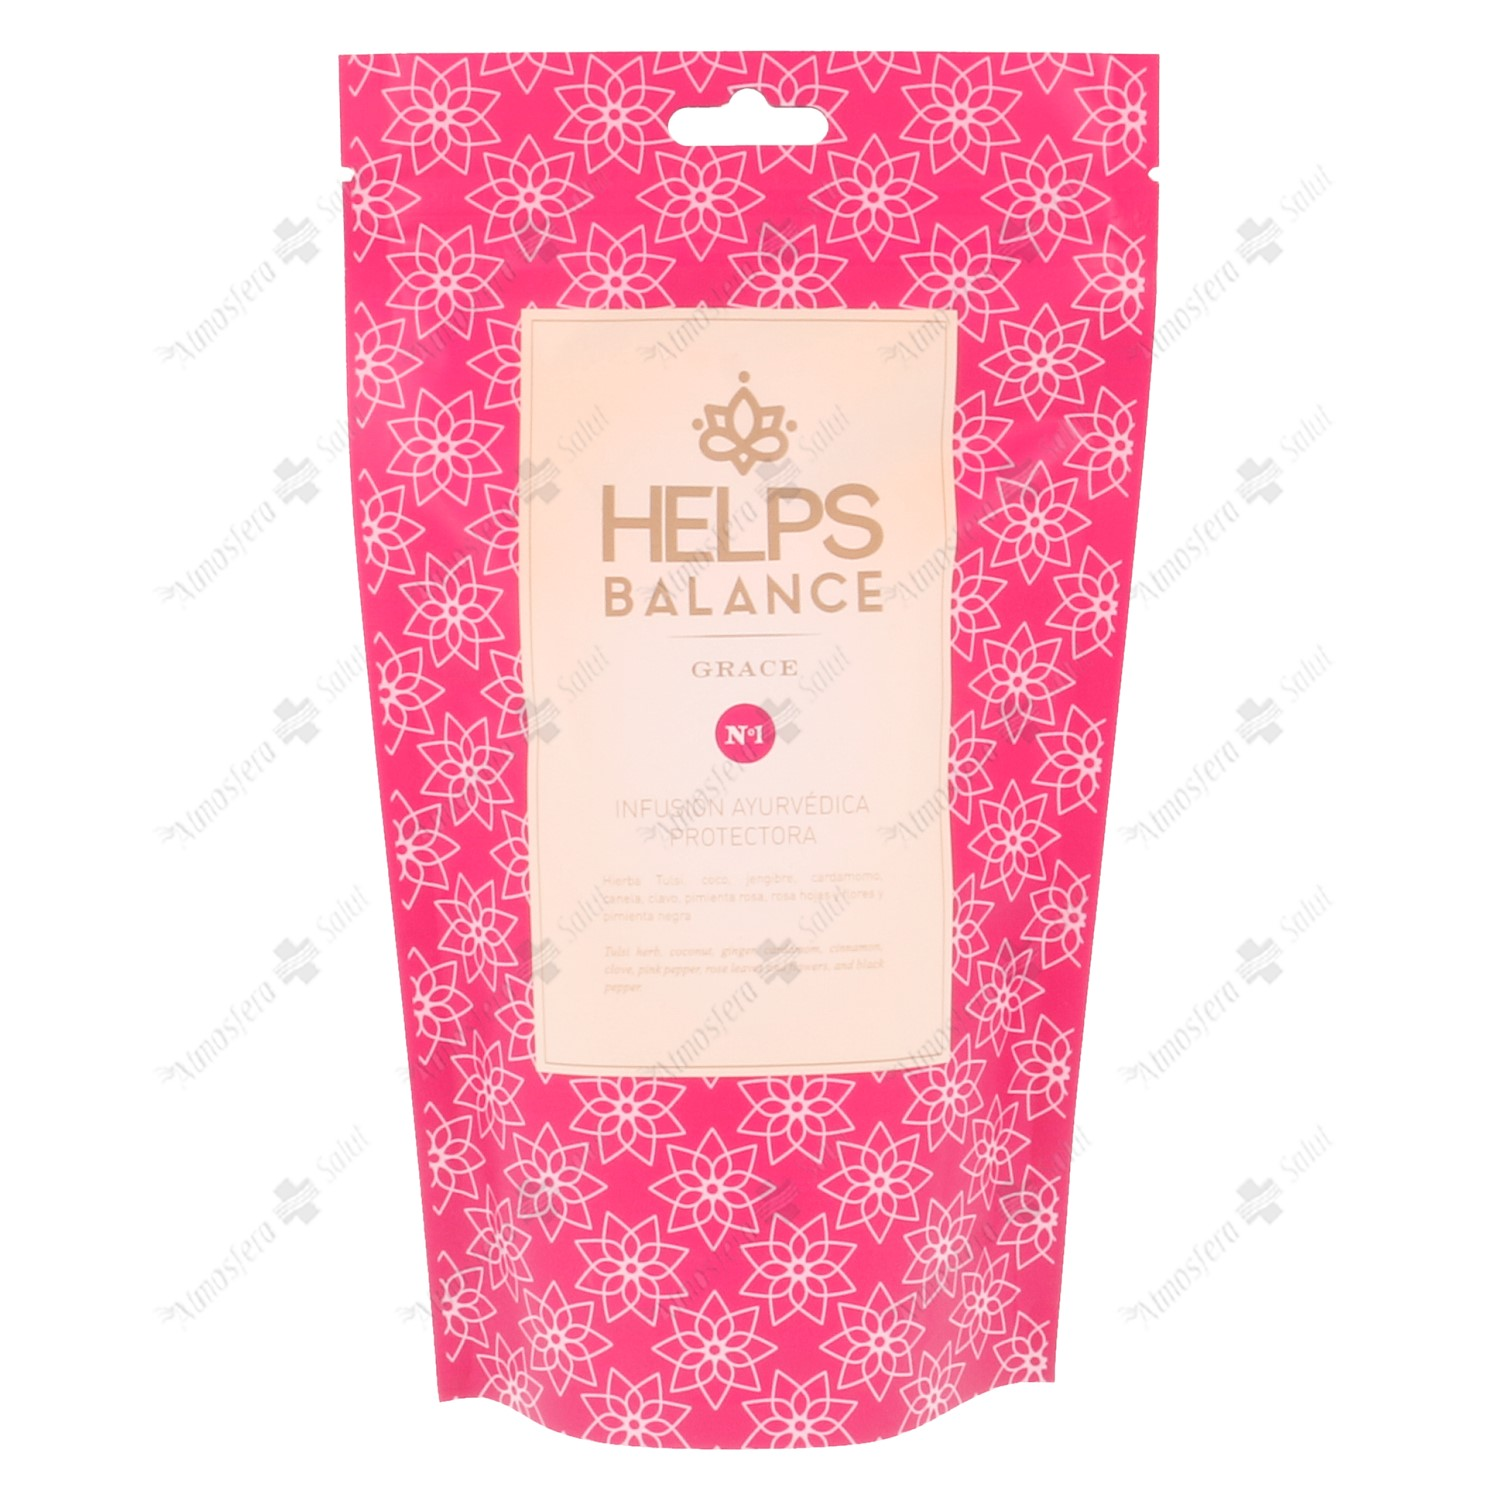 HELPS BALANCE GRACE Nº1 70 GR- 098530 -